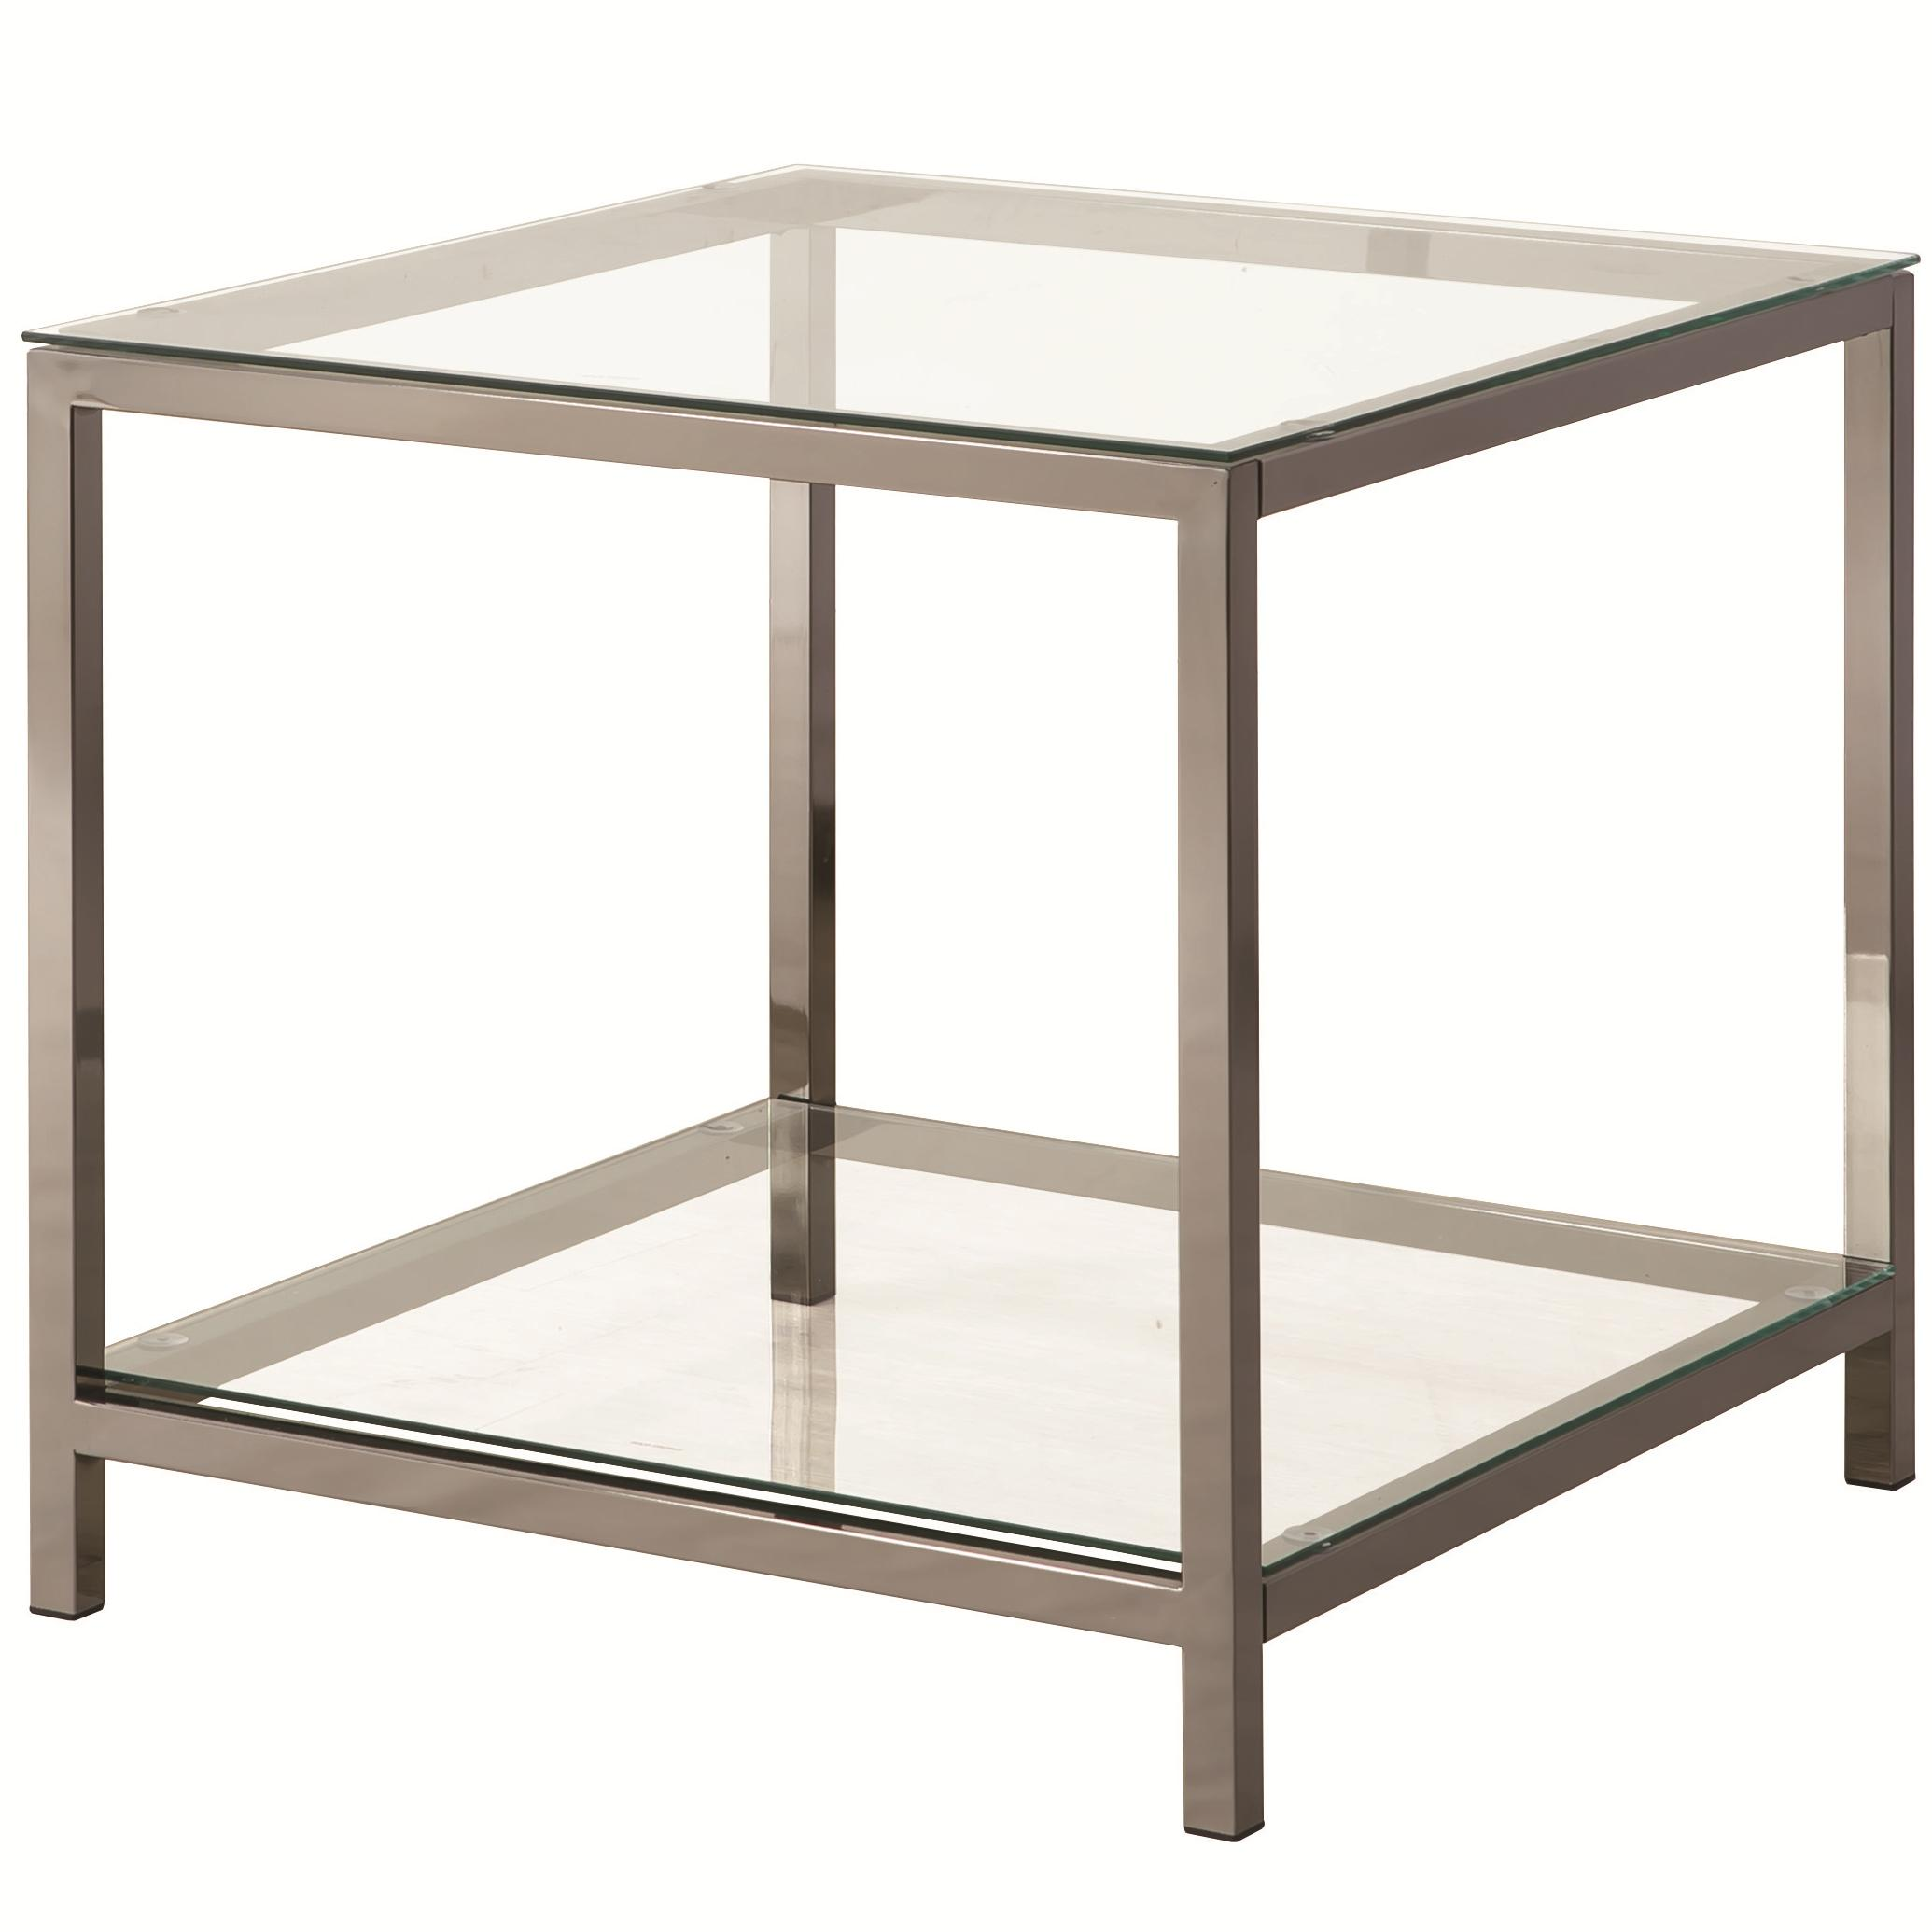 720227 end table with shelf